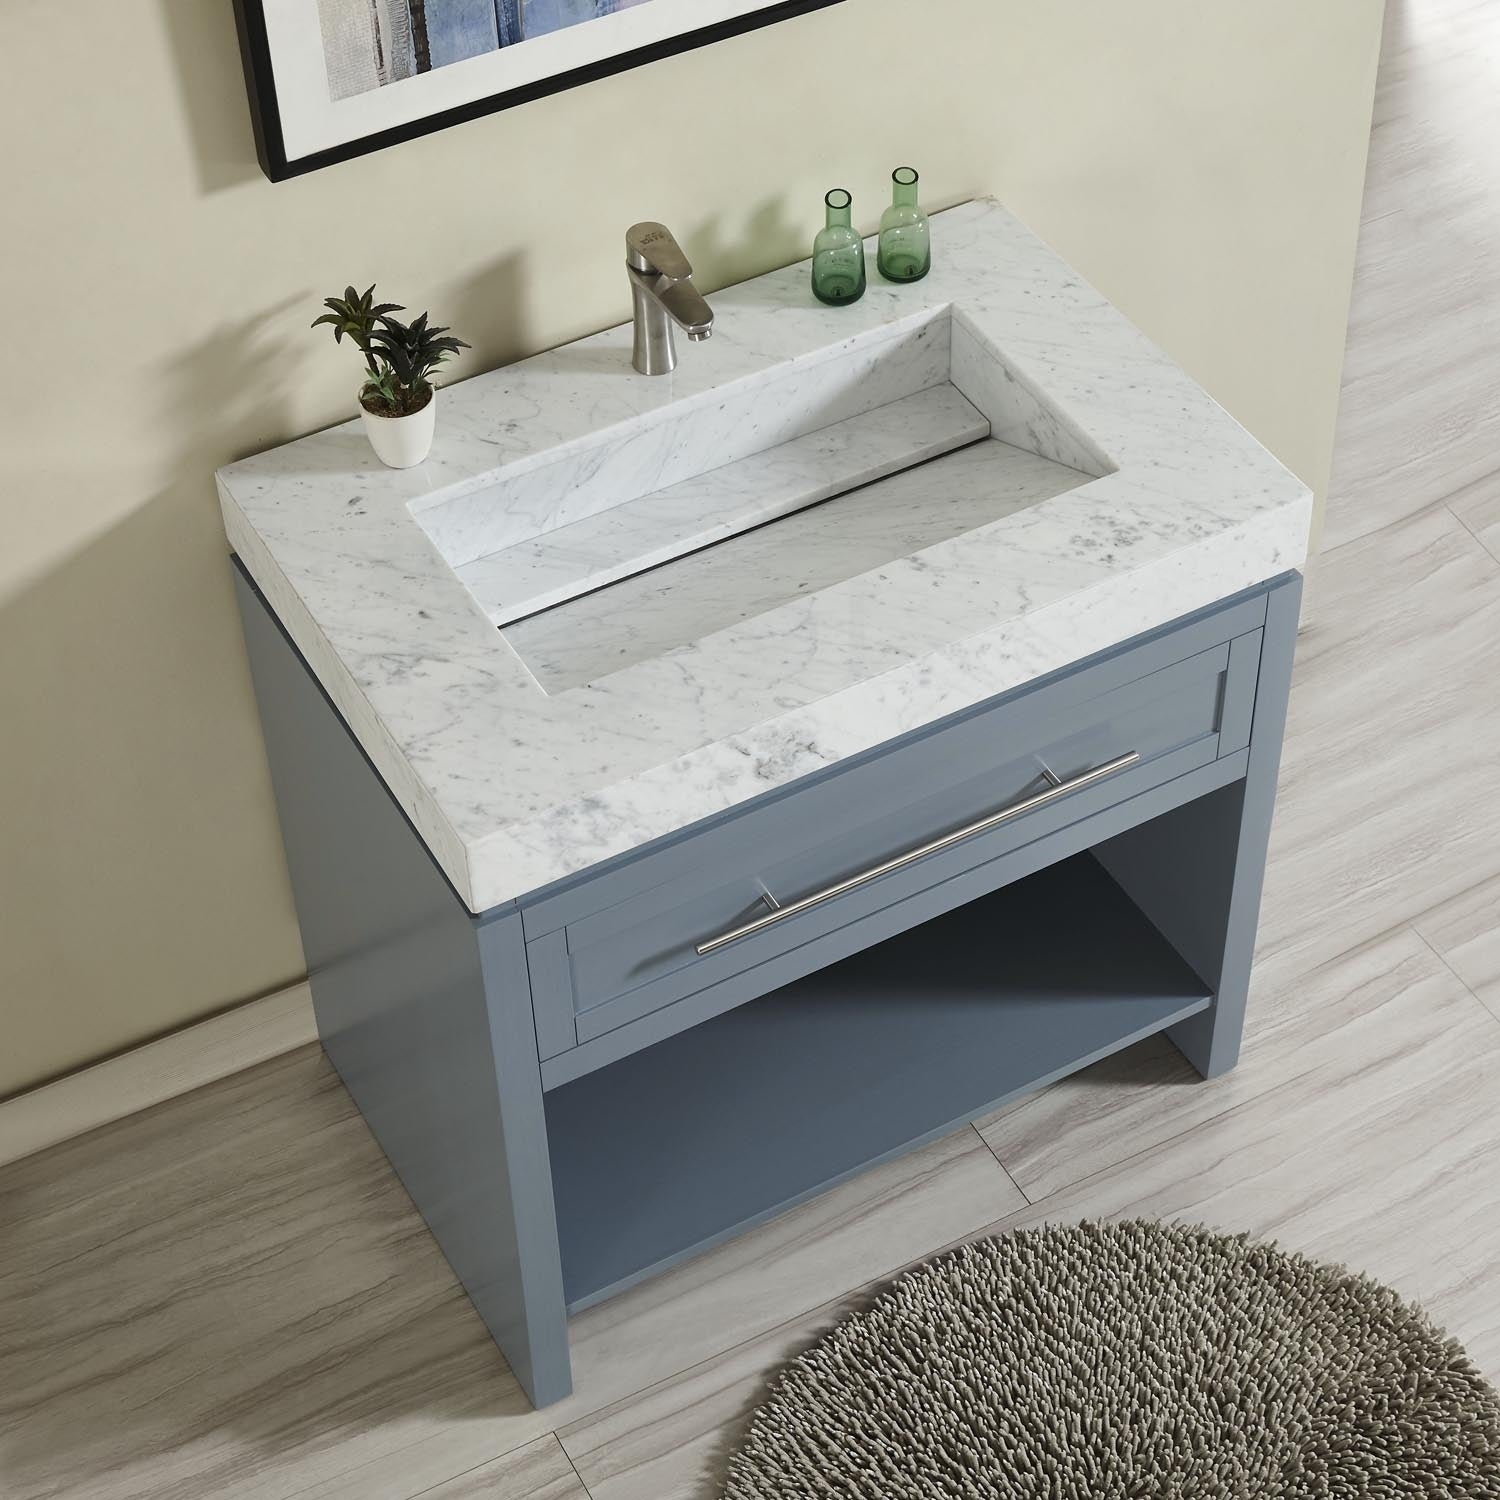 Silkroad Exclusive 36 W X 23 D 3 5 H Vanity Top With Integrated Sink Free Shipping Today 27949759